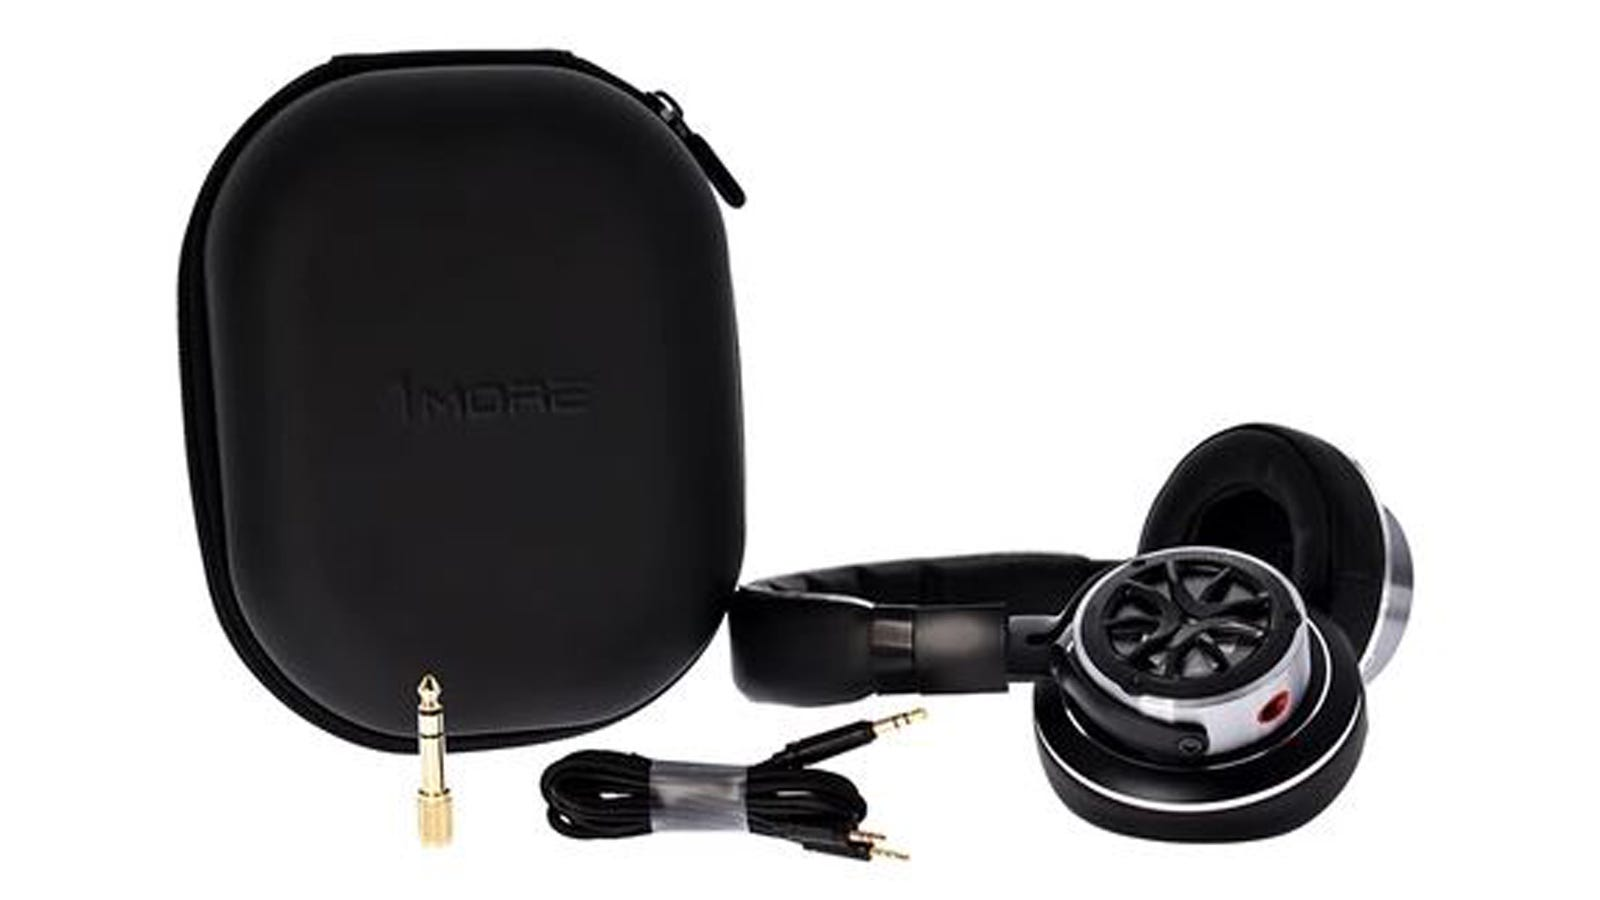 Photo of headphones cable and carry case